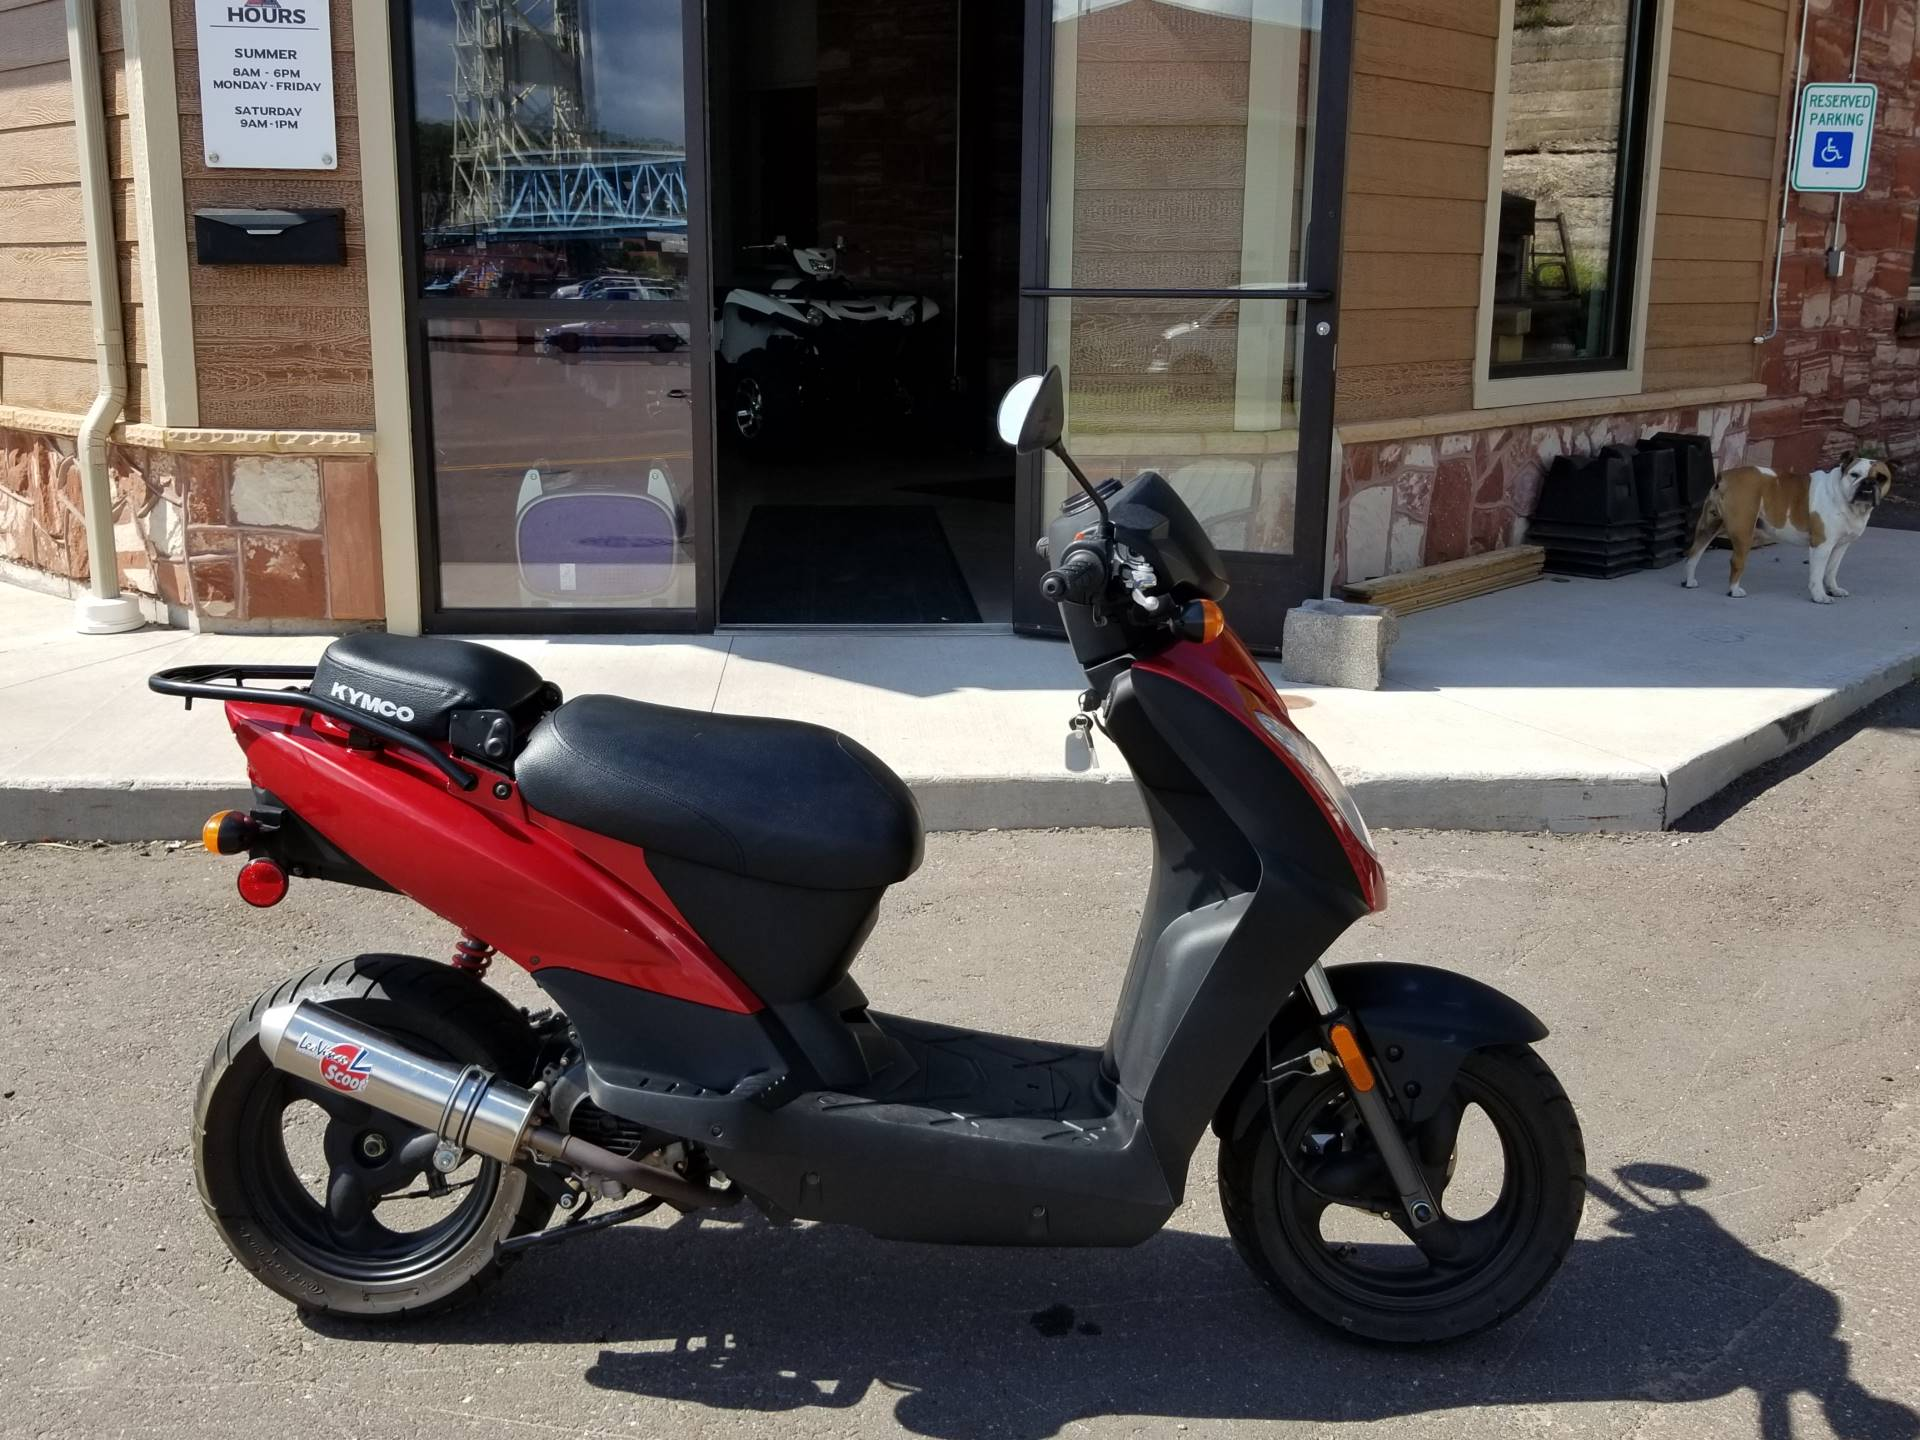 2012 Kymco Agility 50 in Hancock, Michigan - Photo 1